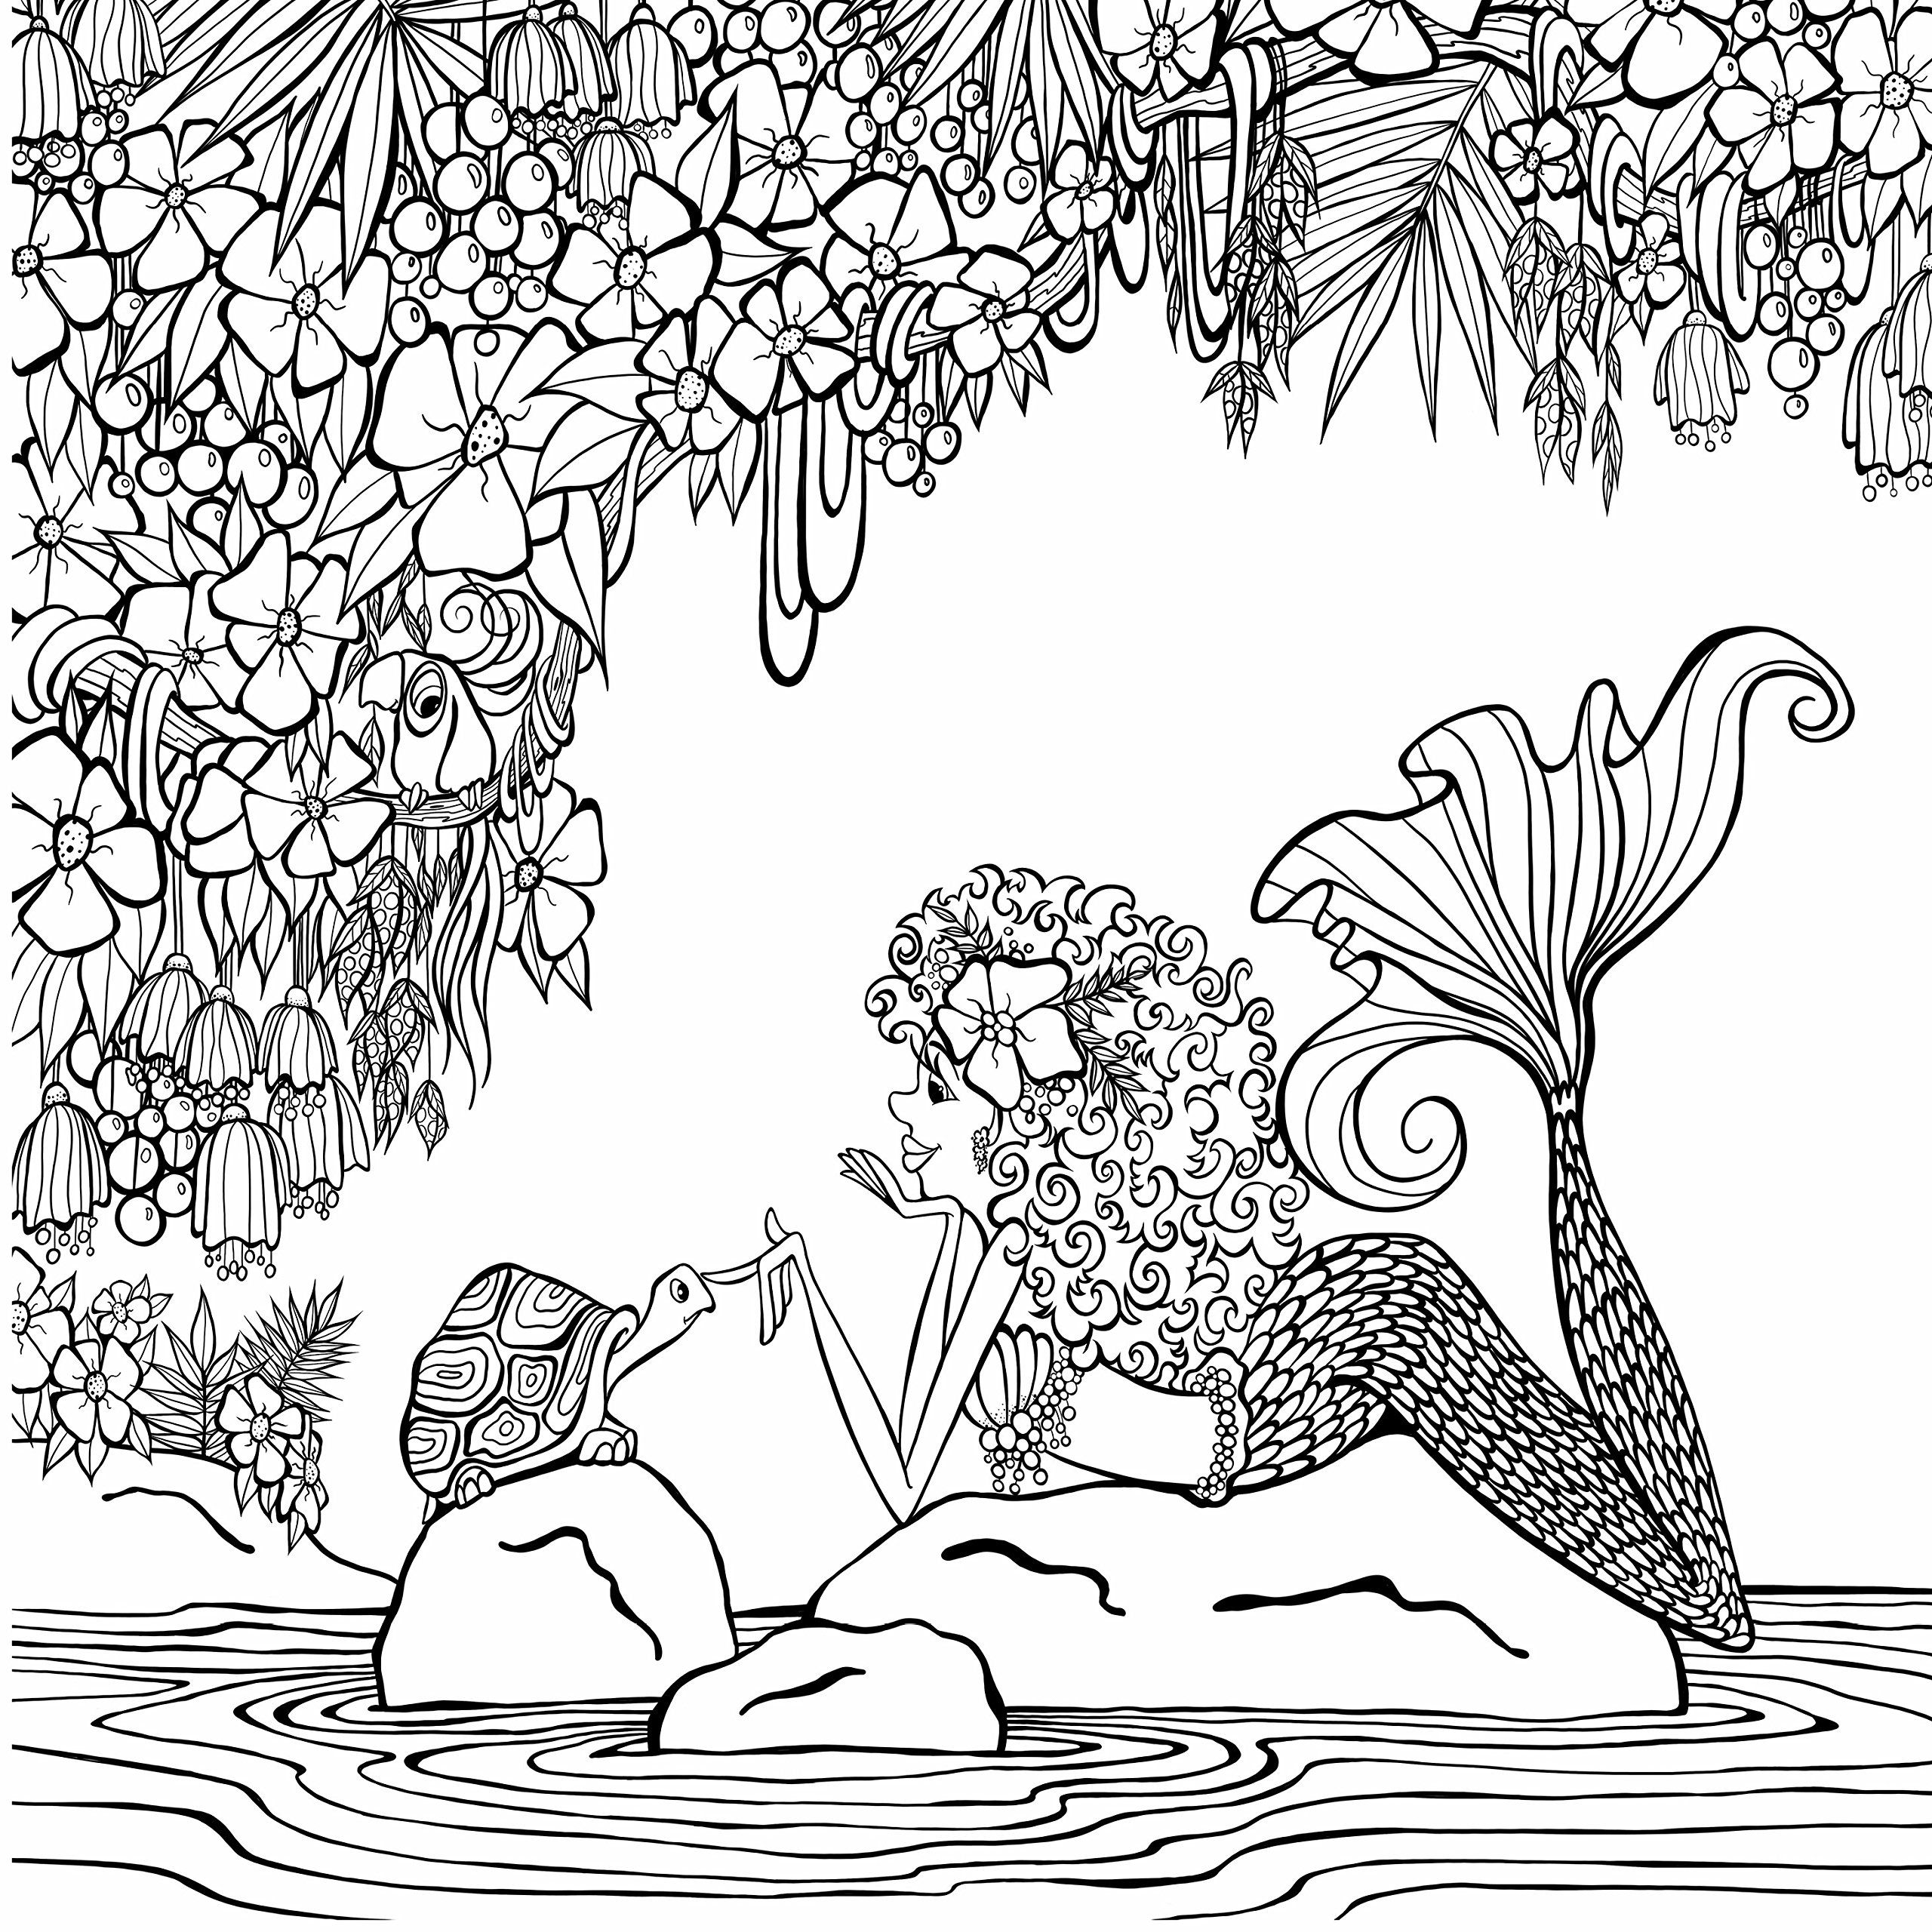 Amazon Com Zendoodle Coloring Presents Mermaids In Paradise An Artist S Coloring Book 9781250147691 Mermaid Coloring Pages Mermaid Coloring Coloring Pages